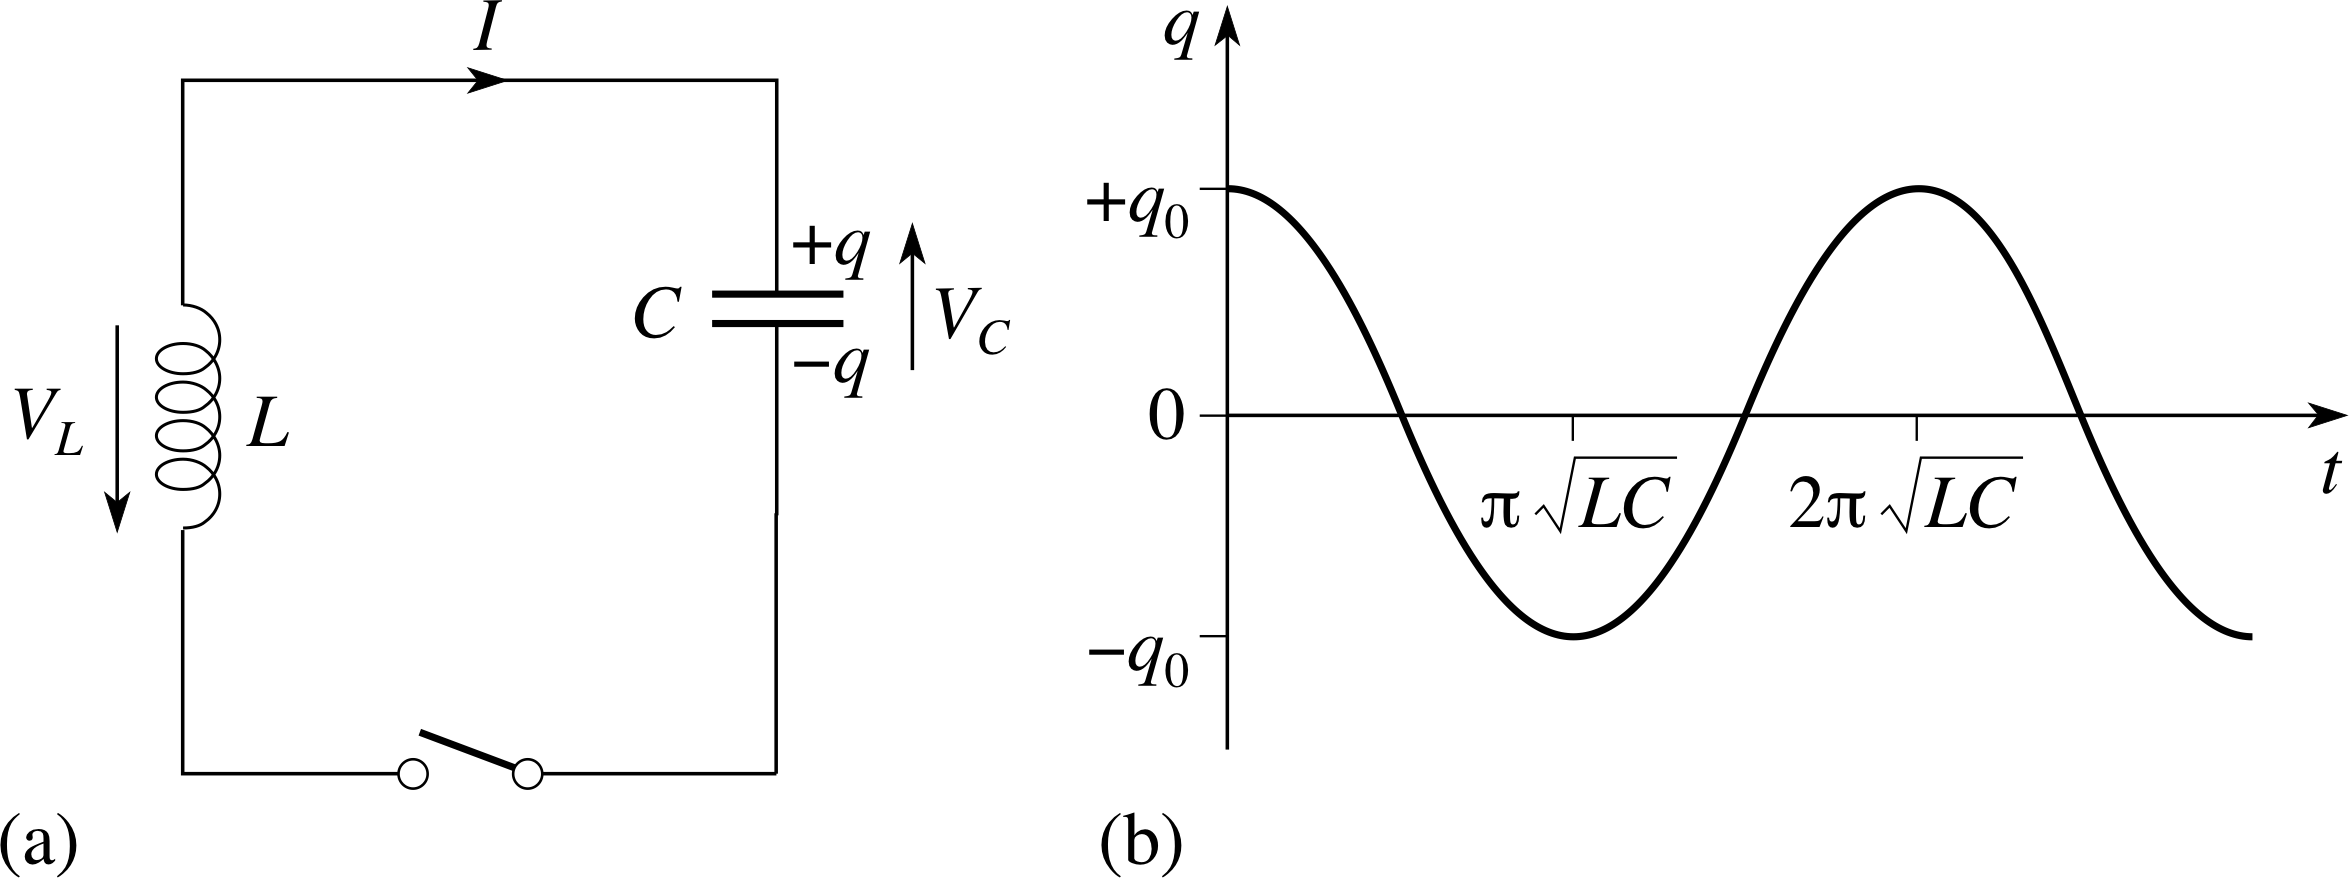 Pplato Flap Phys 54 Ac Circuits And Electrical Oscillations Current Diagram 33 In Lc